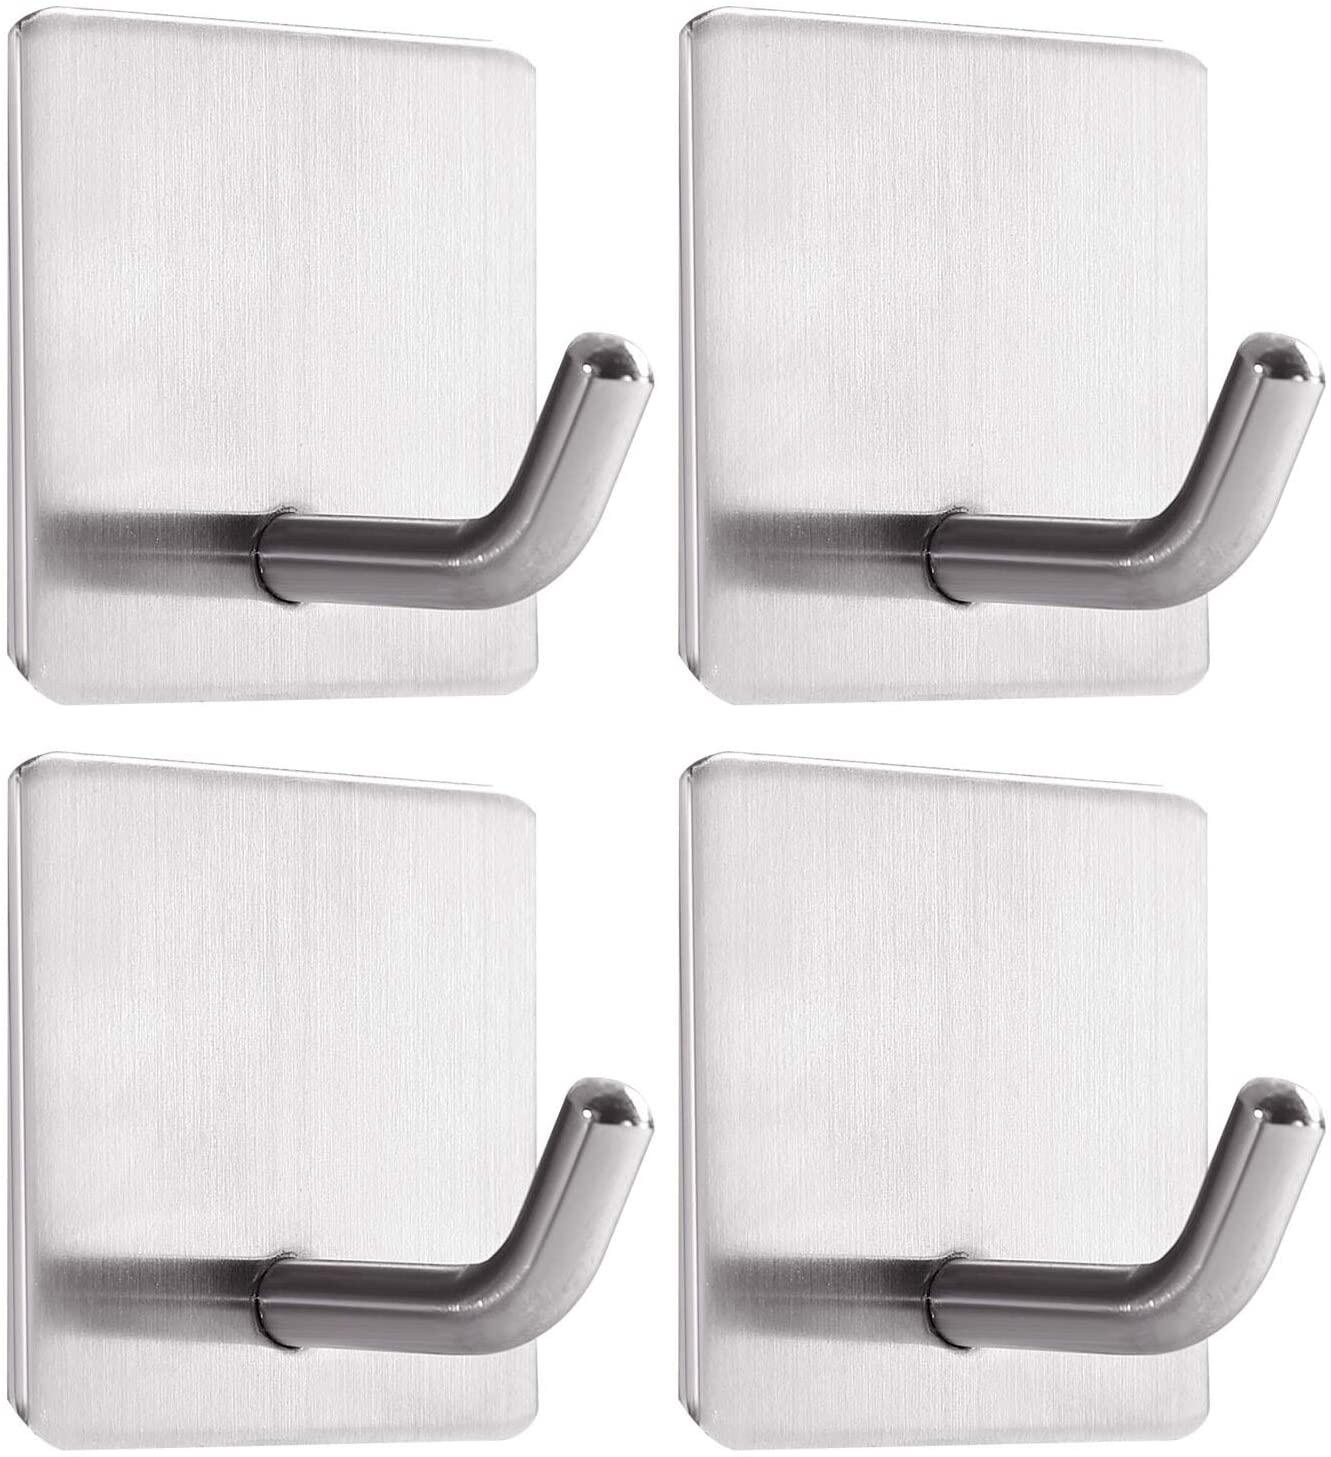 Self Adhesive Hooks, Stainless Steel Sticky Hooks Waterproof and Rustproof for Hanging on Wall, Door, Closet, Bathroom, Kitchen, Bedrooms for Towel, Tea Towel, Clothes - 4 PacksStick on Hooks, Self Adhesive Hooks Stainless Steel Sticky Hooks Waterproof and Rustproof for Hanging on Wall, Door, Closet, Bathroom, Kitchen, Bedrooms for Towel, Tea Towel, Clothes - 4 Packsself-adhesive hooks